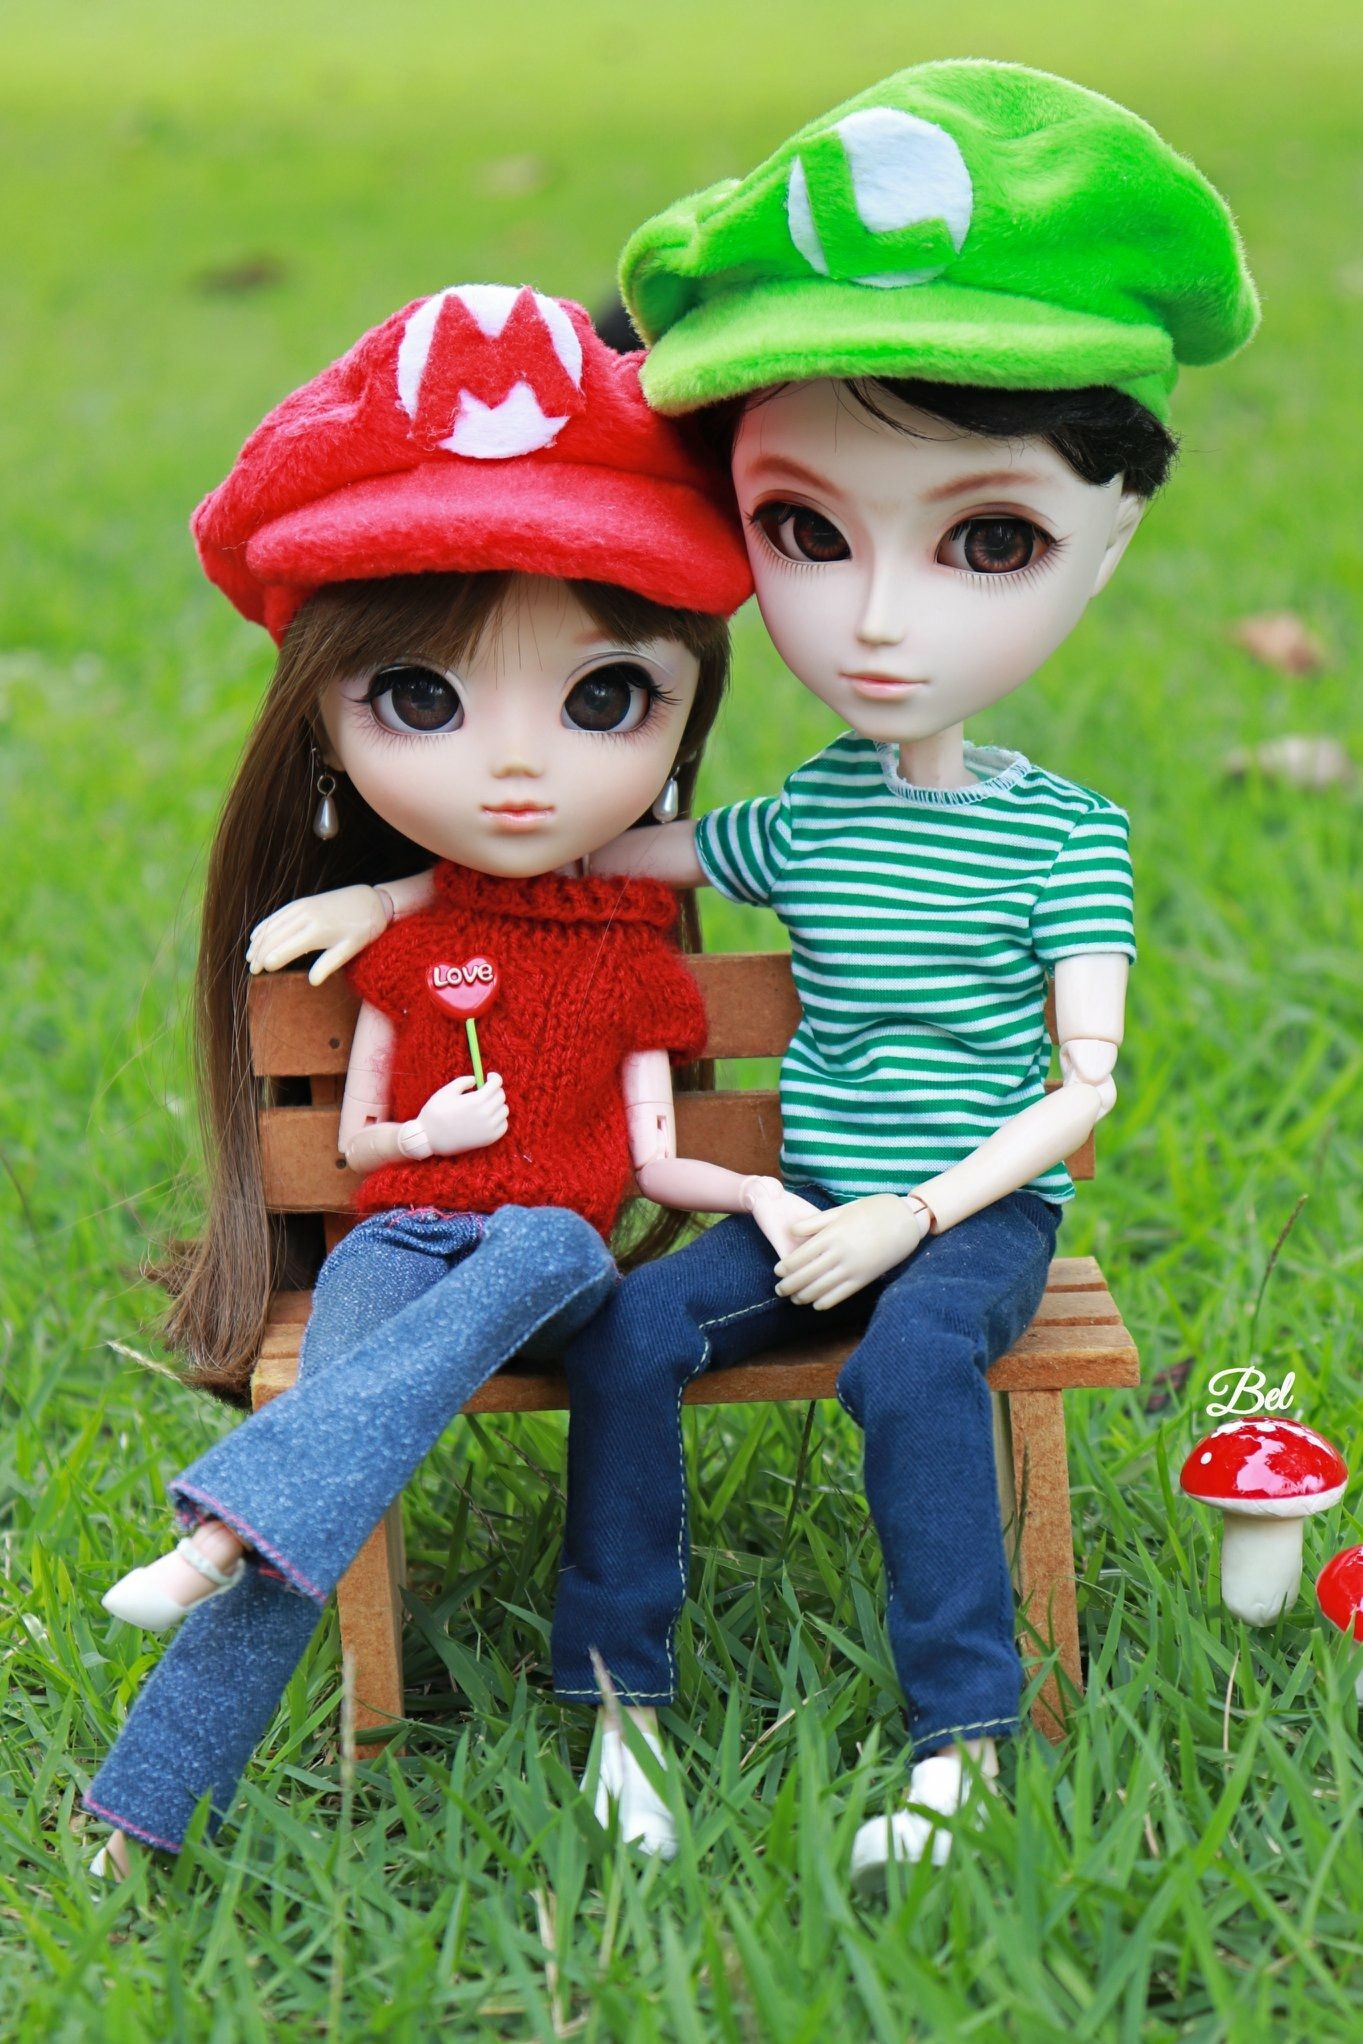 Casal Lindo Cute Love Wallpapers Cute Couple Wallpaper Cute Cartoon Pictures